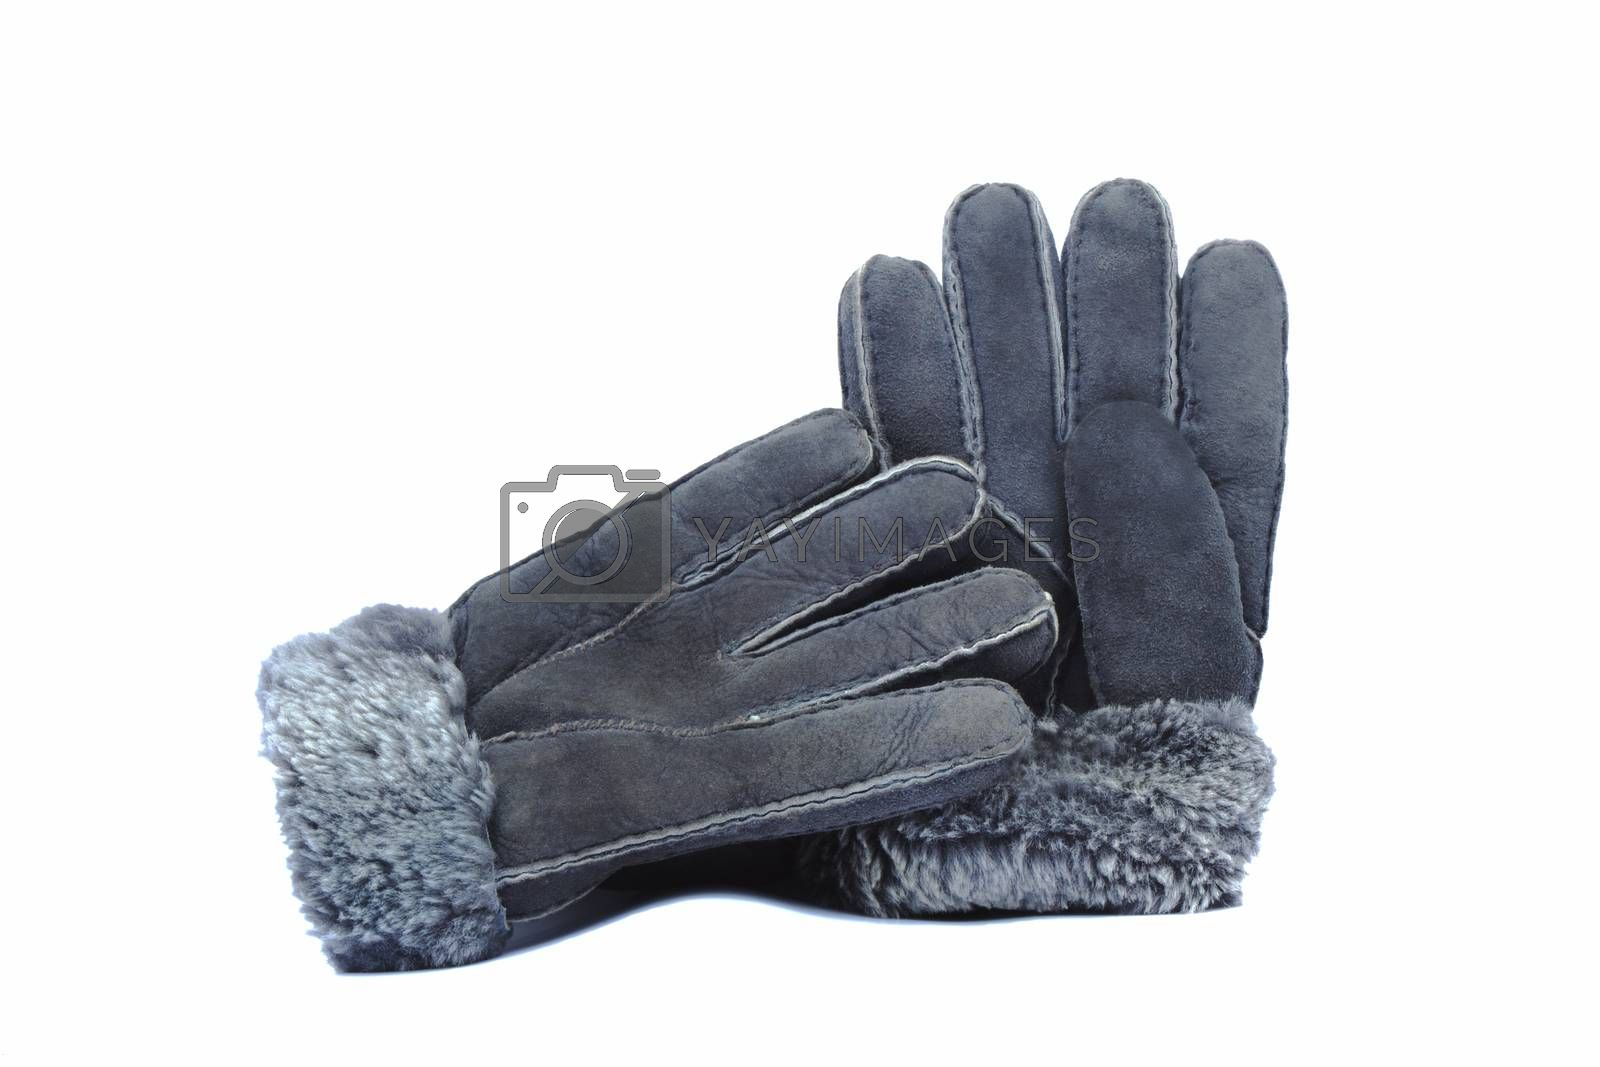 Warm winter gloves made of natural fur . Presented on a white background.